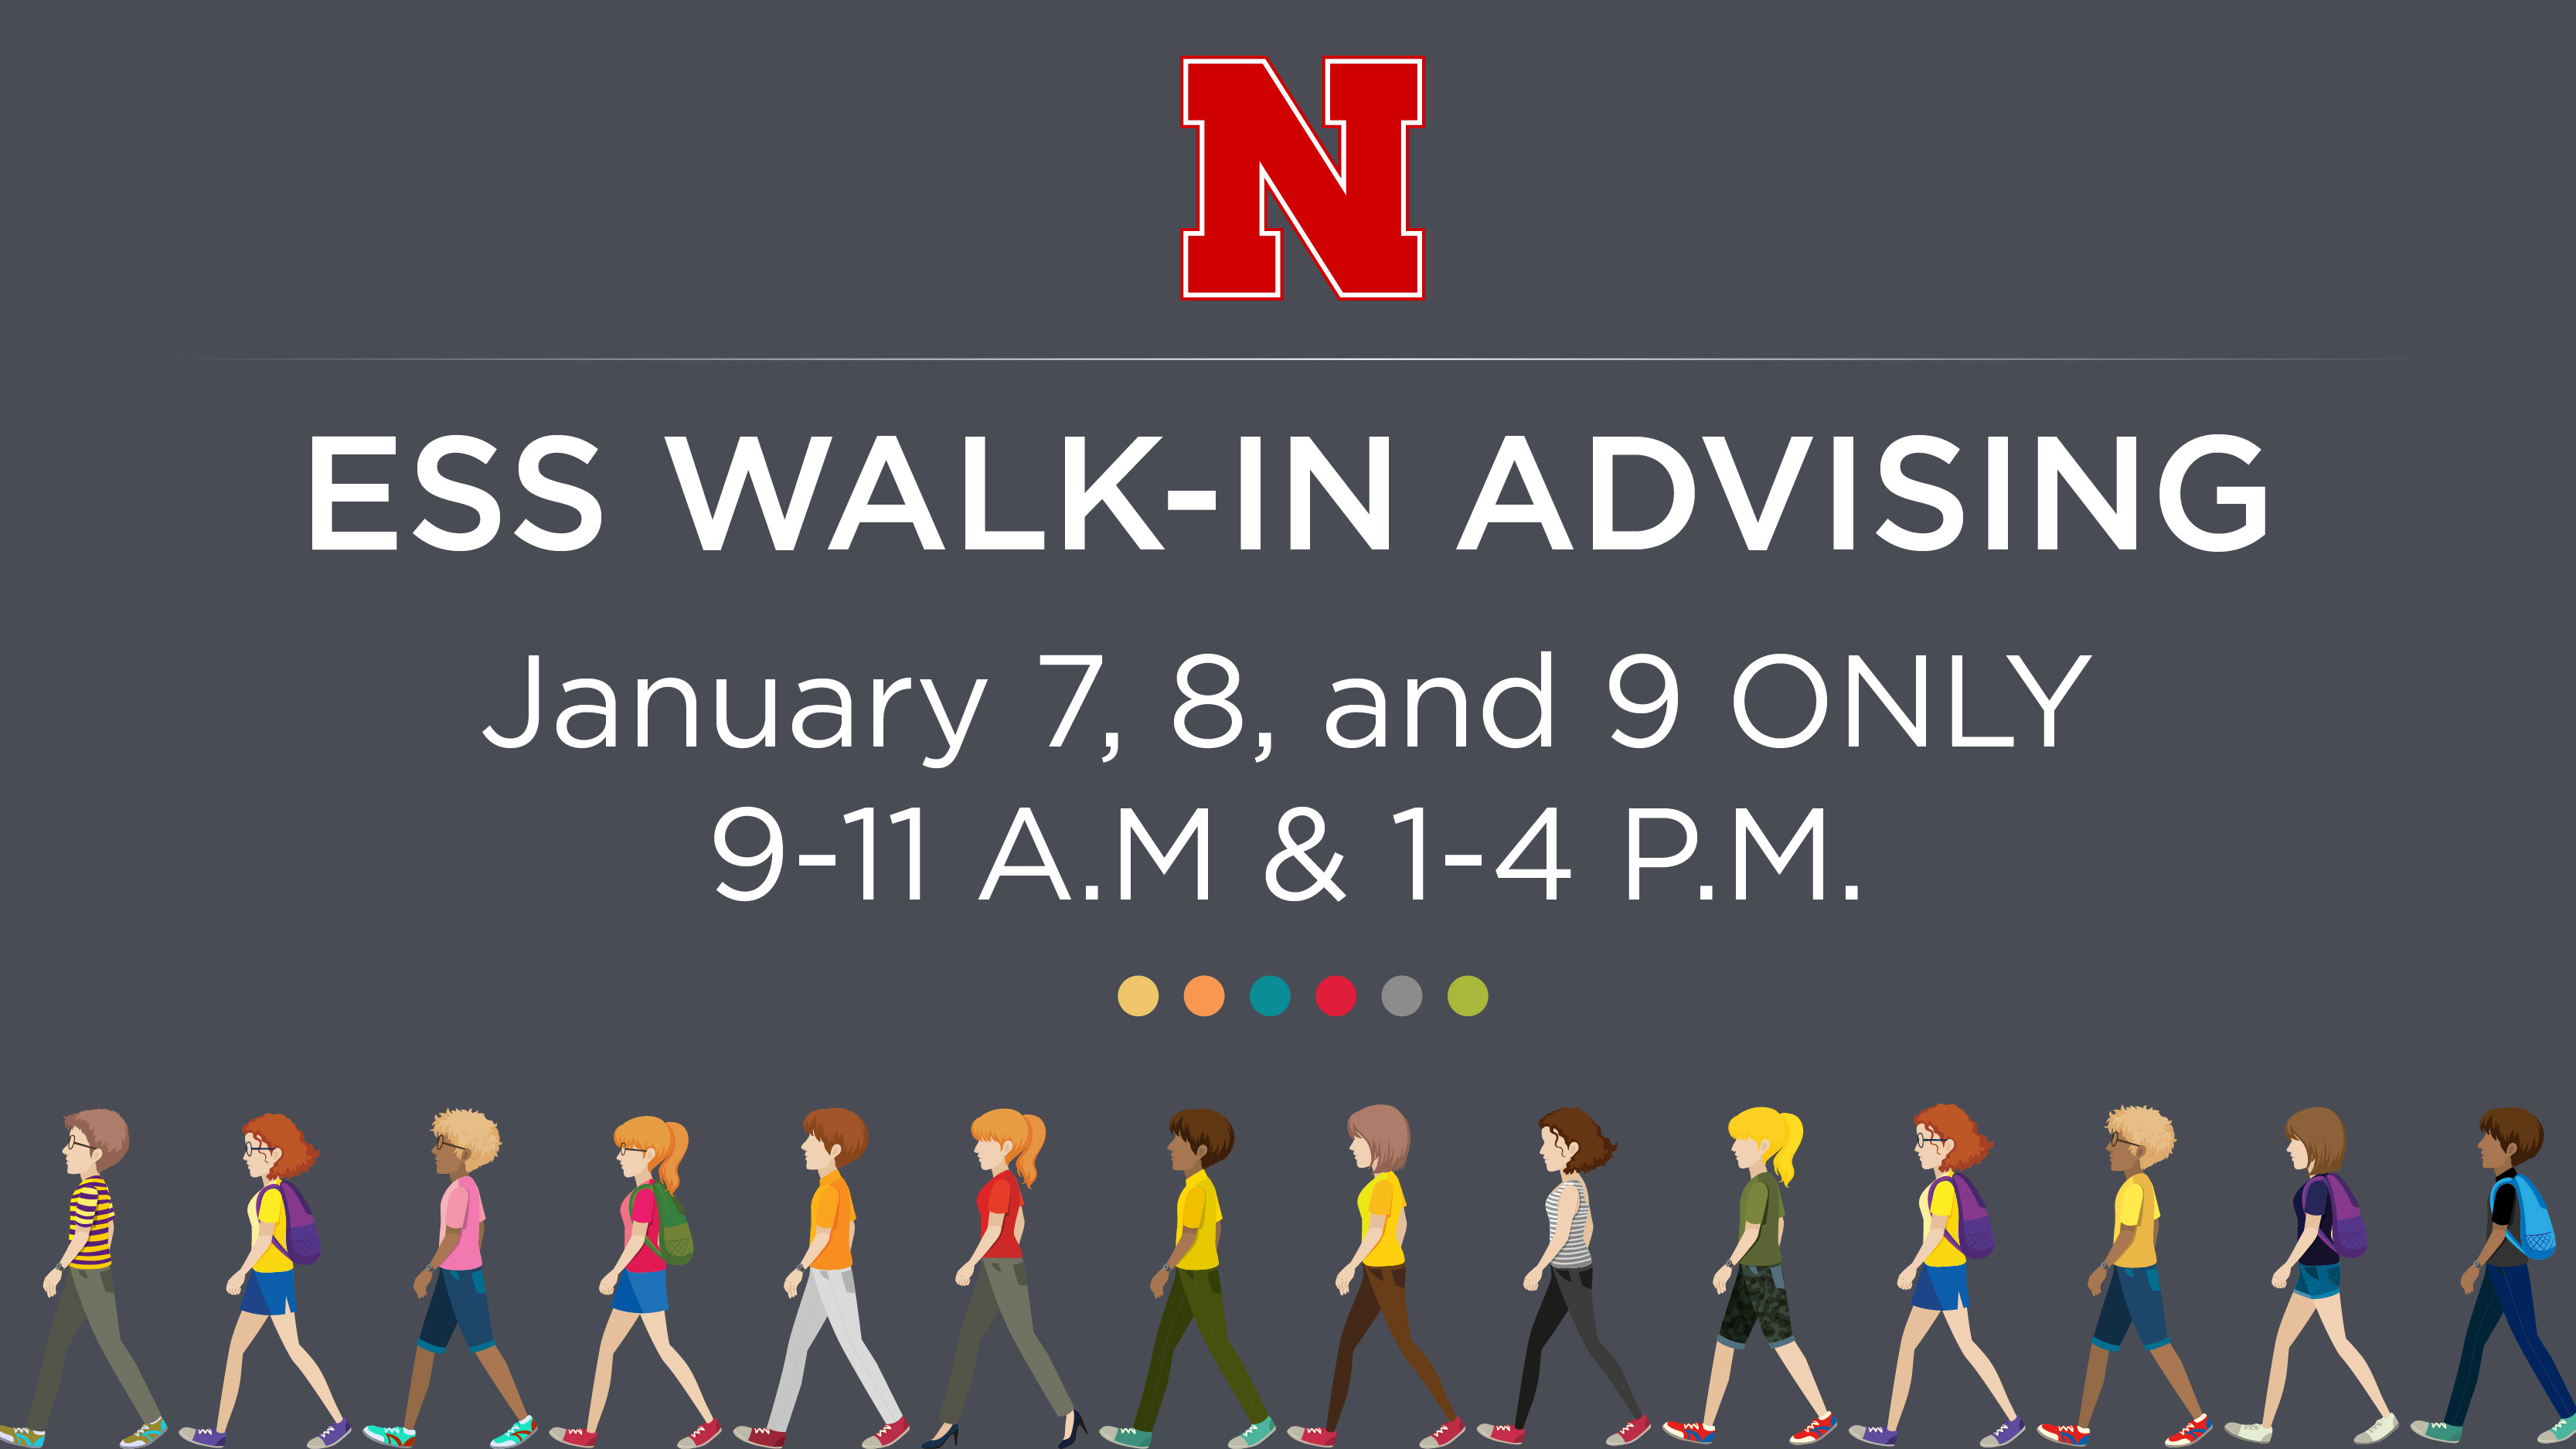 ESS offers Walk-In Advising today, Tuesday and Wednesday.